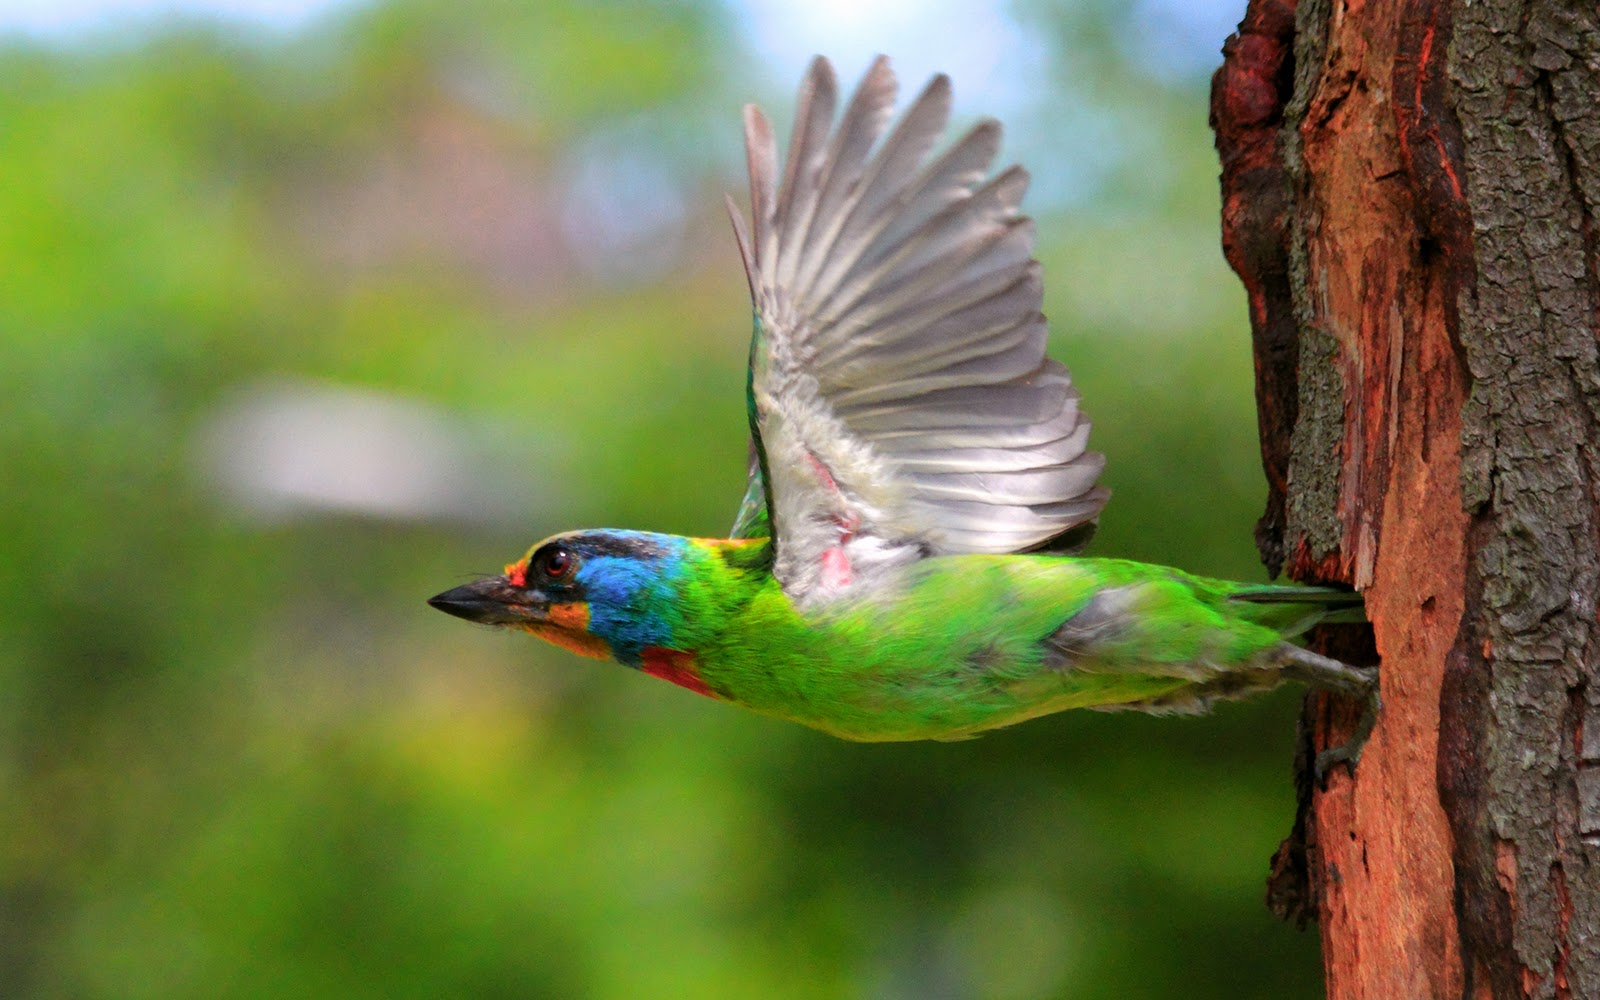 Free download birds animals hd wallpapers download hq - Animal and bird hd wallpaper ...